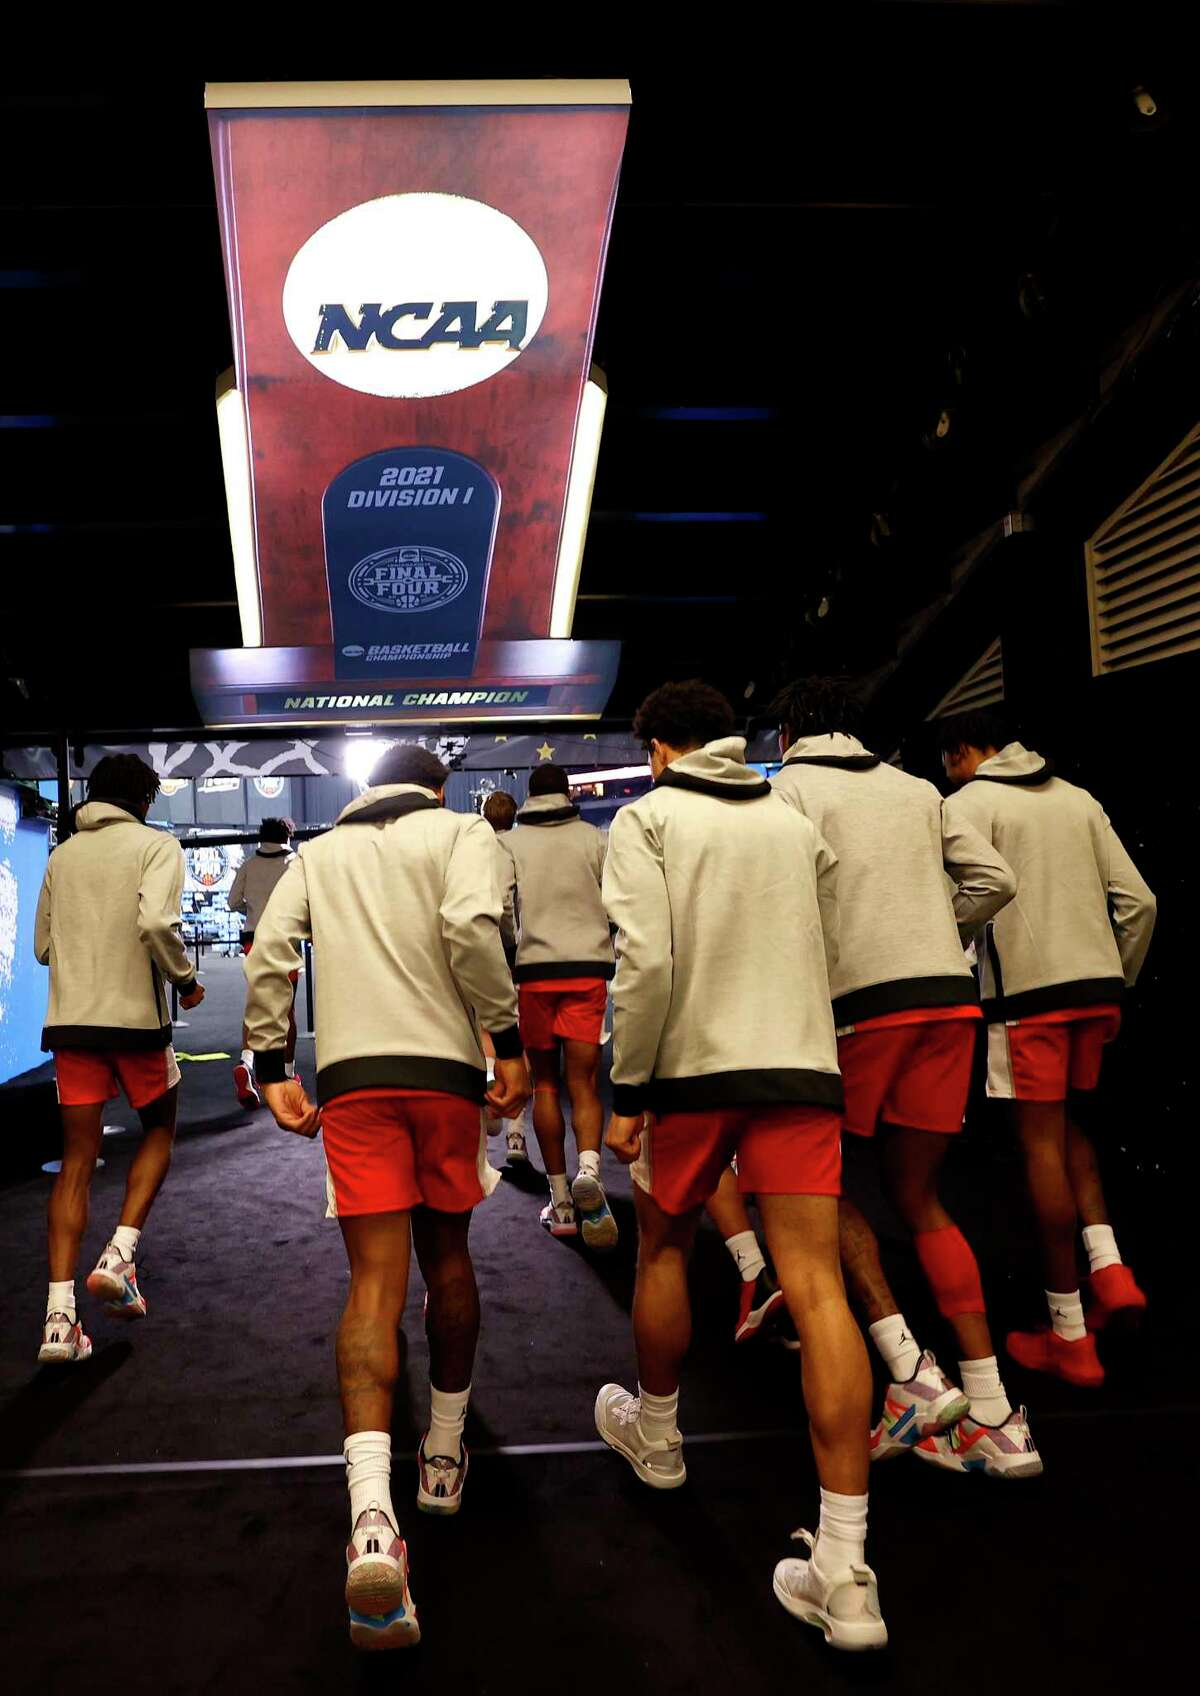 INDIANAPOLIS, INDIANA - APRIL 03: The Houston Cougars walk to the court before the 2021 NCAA Final Four semifinal against the Baylor Bears at Lucas Oil Stadium on April 03, 2021 in Indianapolis, Indiana.